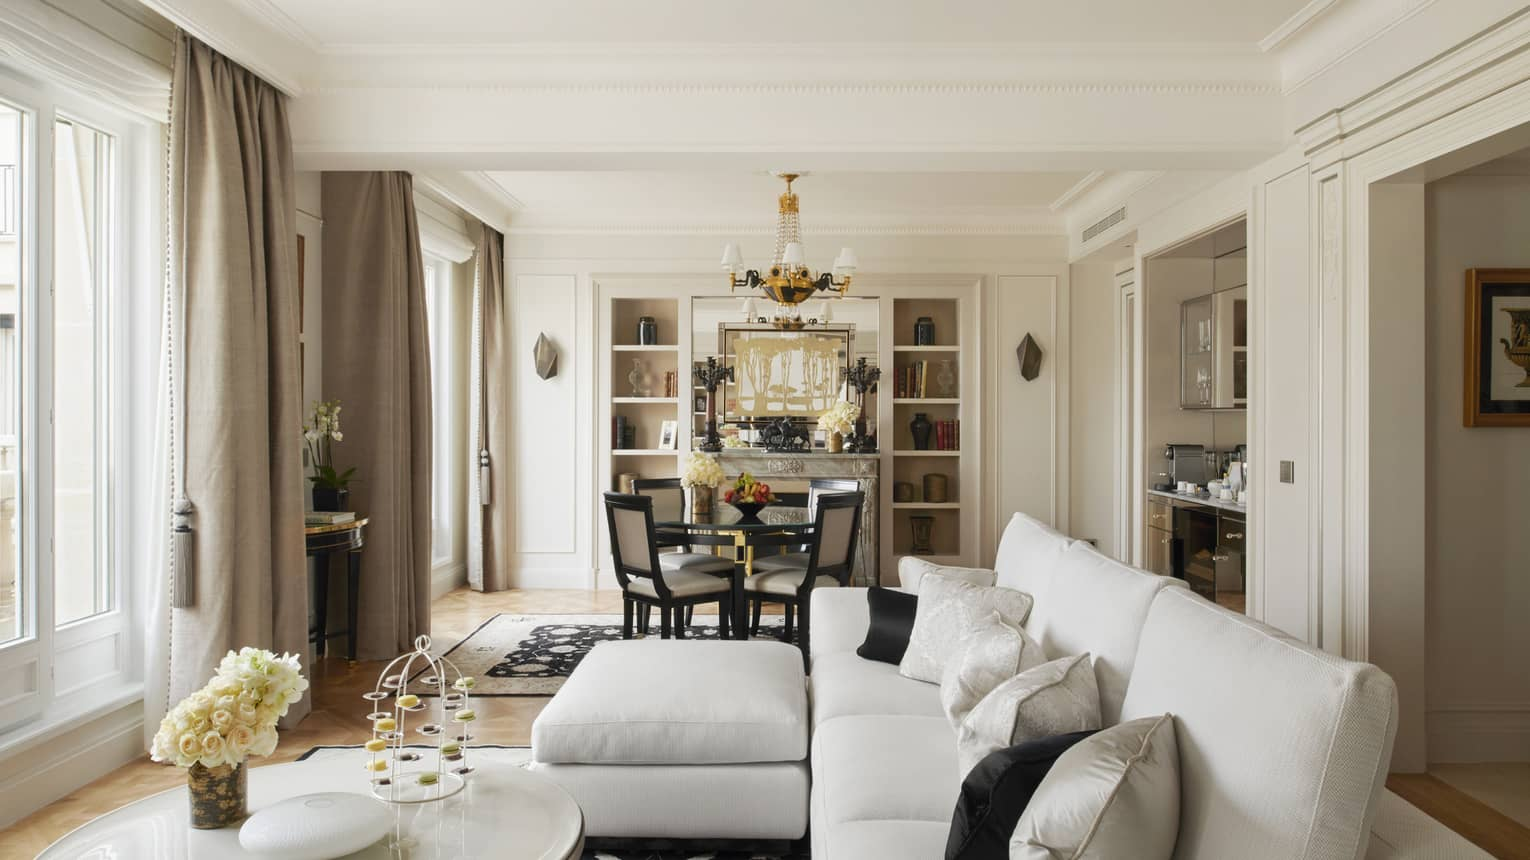 Parisian suite with white couch, coffee table, small table for four, black & white accents